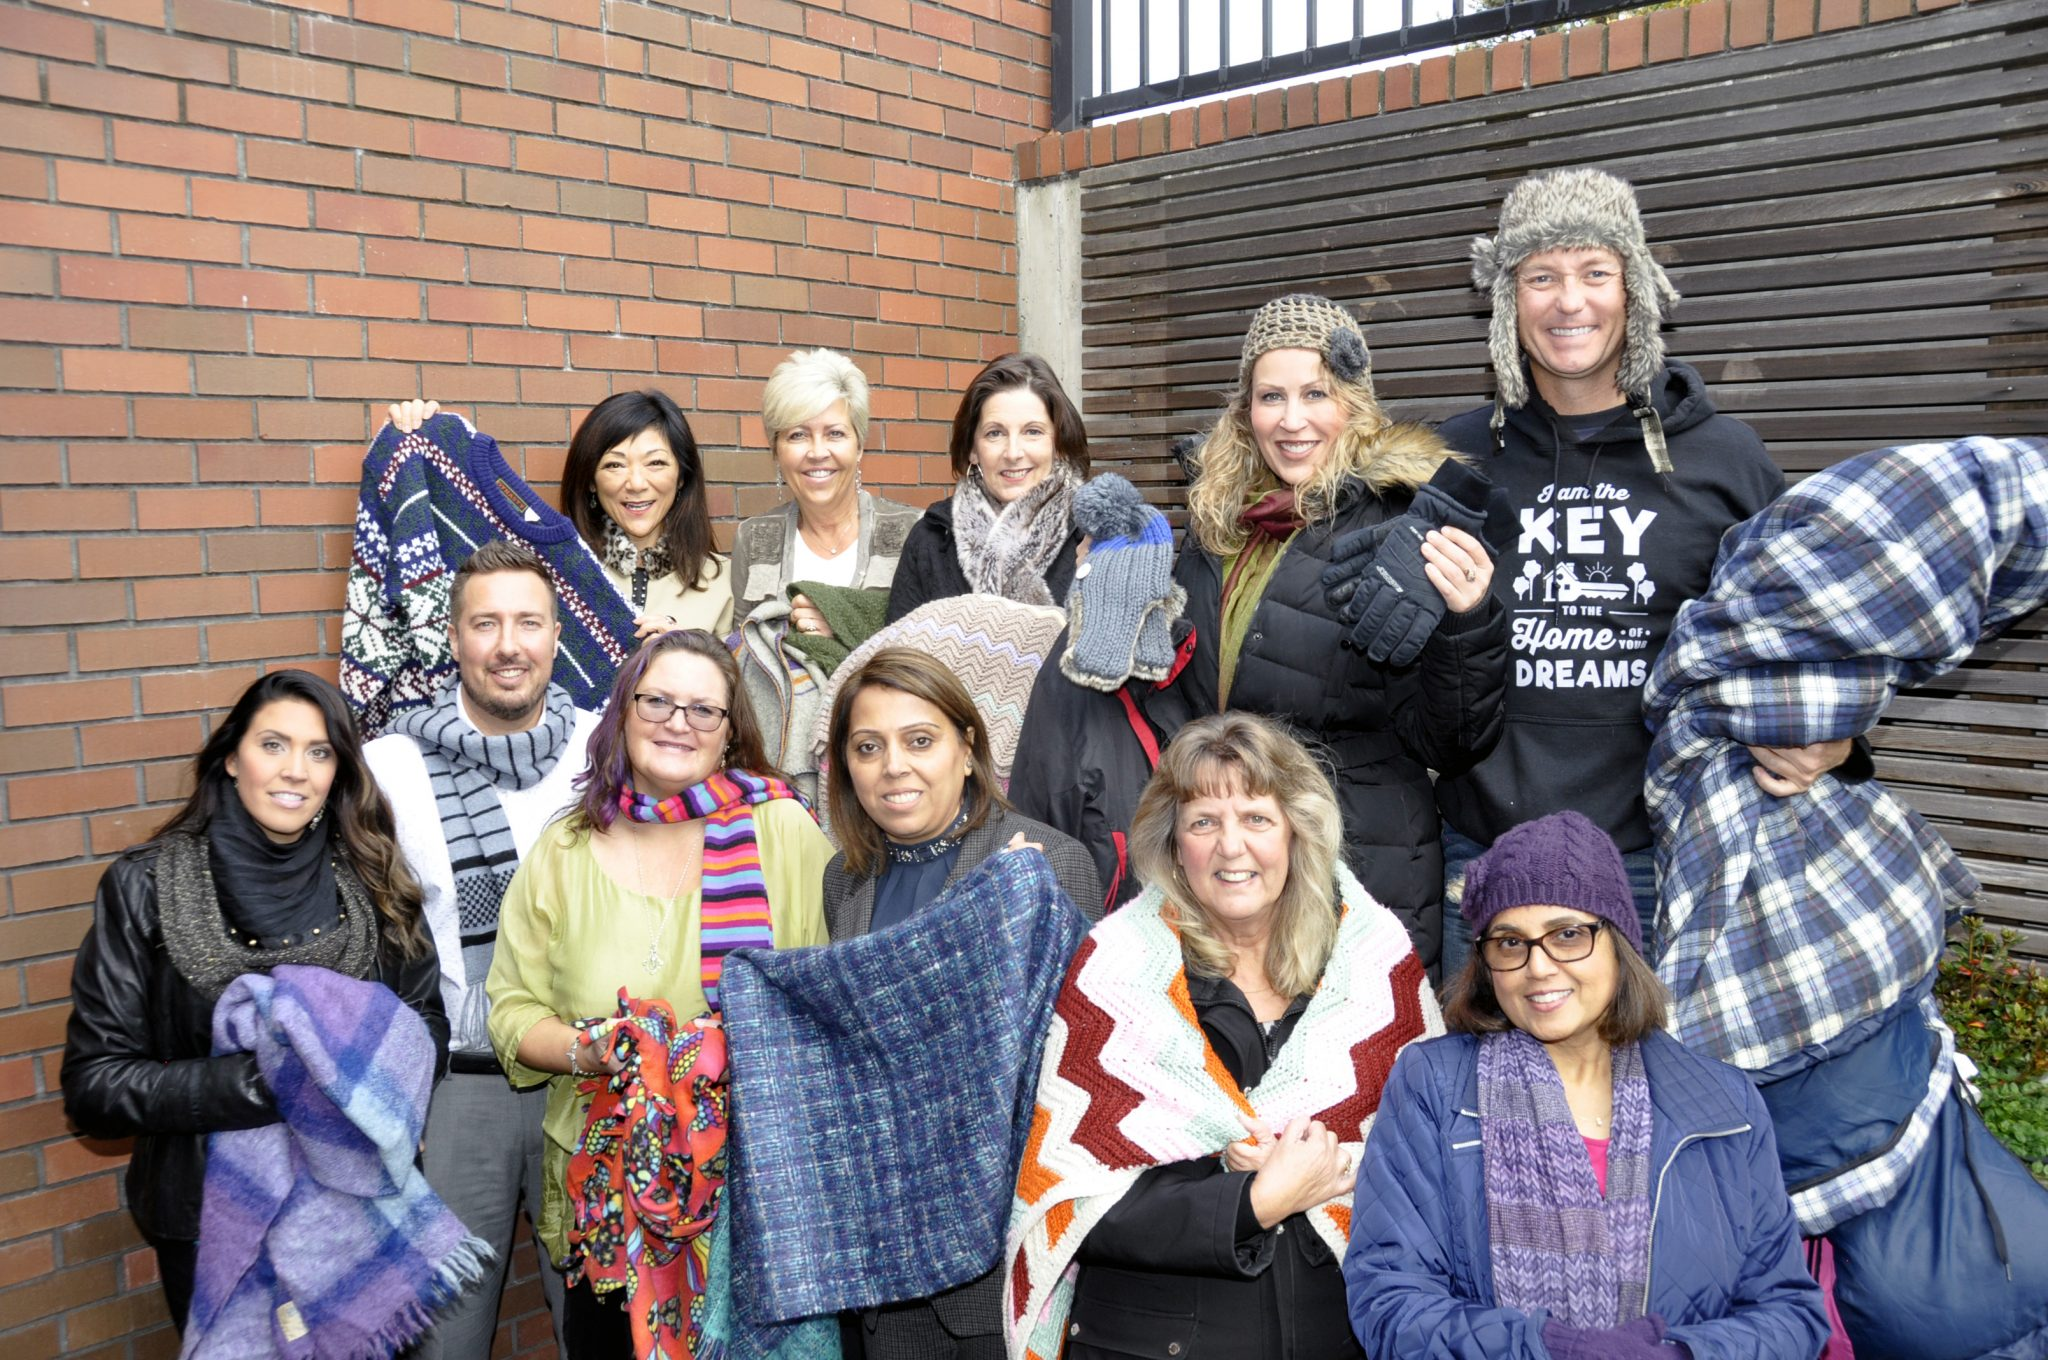 Volunteers for the Blanket Drive